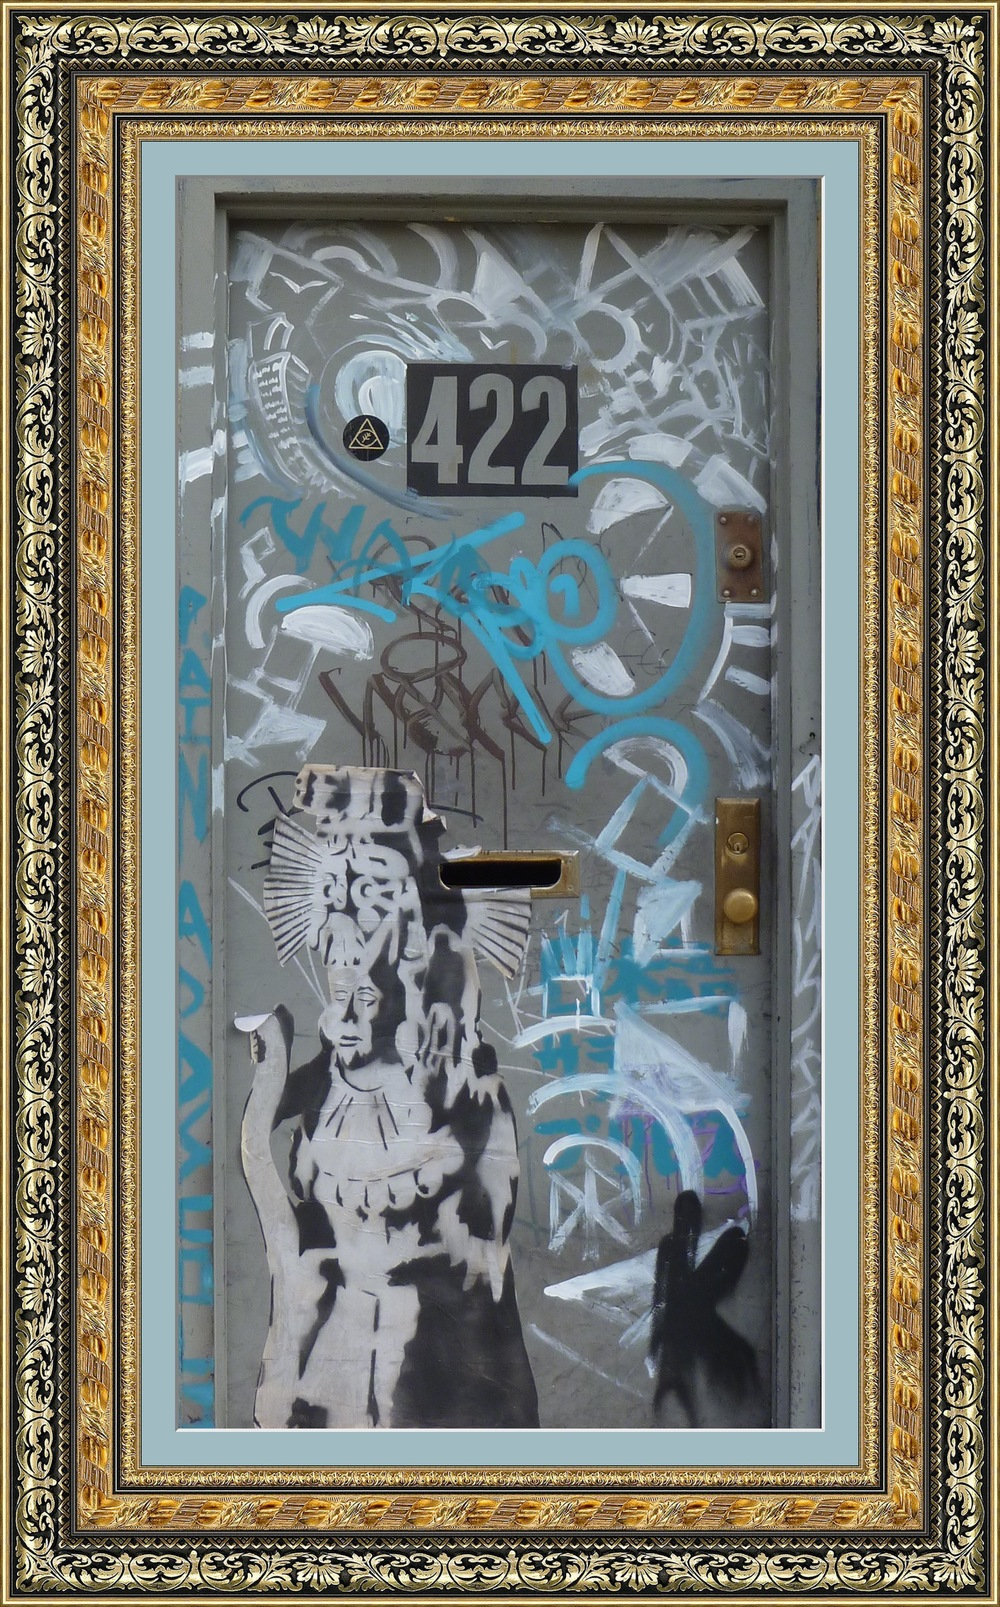 MASTERPIECE_DOOR_Keap Street.jpg